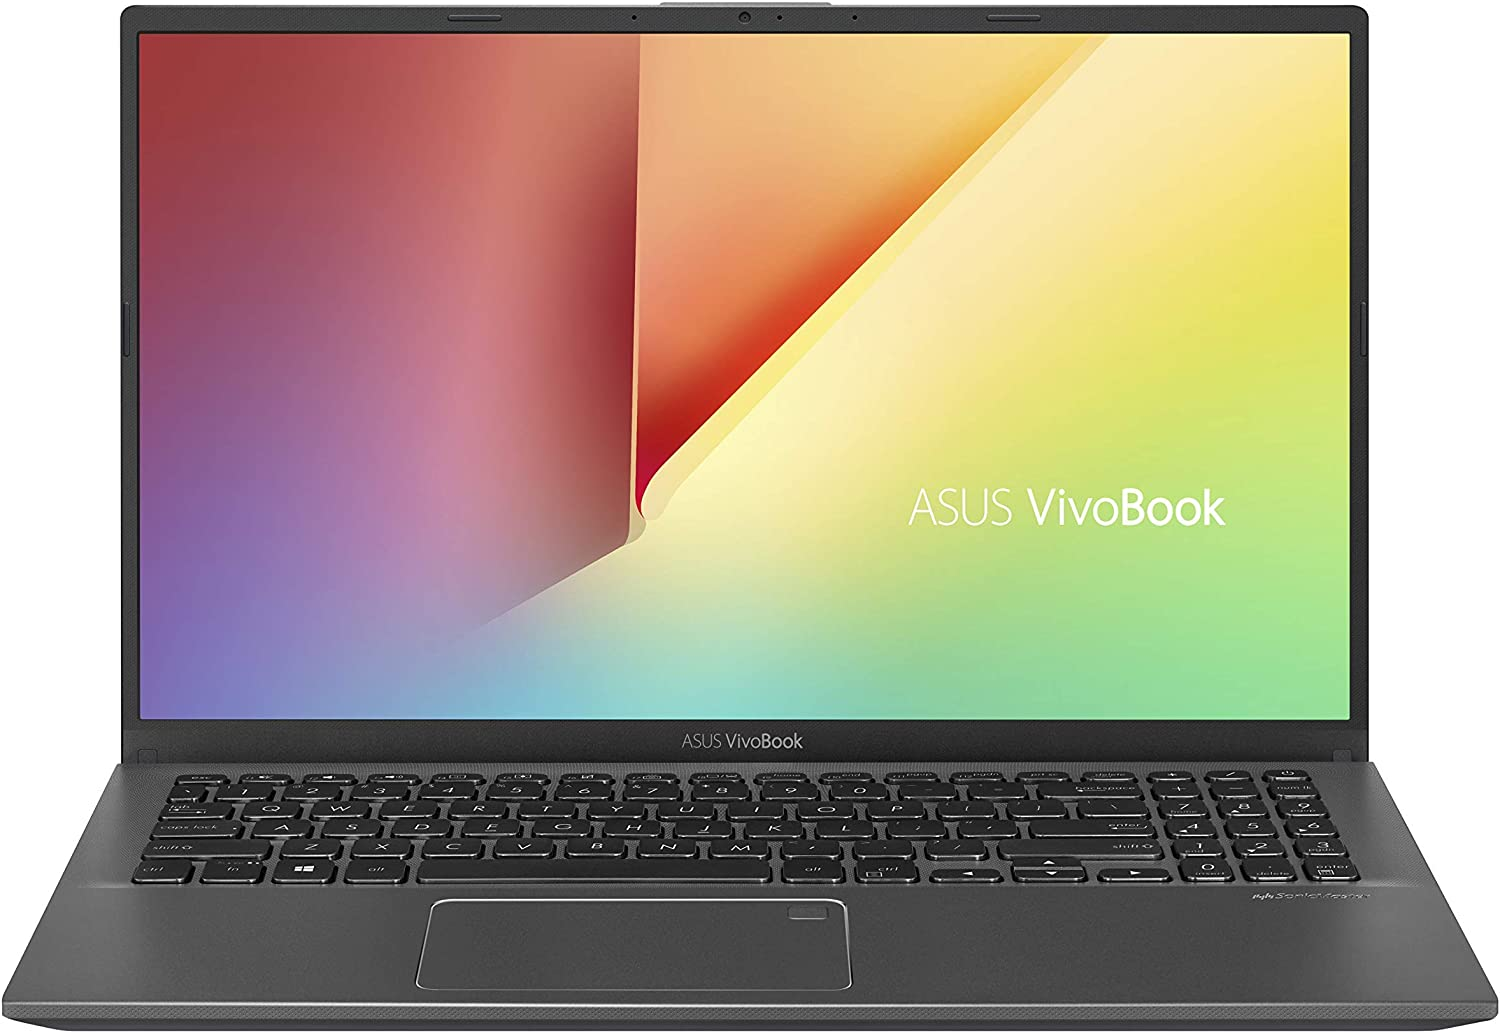 "ASUS VivoBook 15 Thin and Light Laptop, 15.6"" FHD, Intel Core i3-8145U CPU, 8GB RAM, 128GB SSD, Windows 10 in S Mode, F512FA-AB34, Slate Gray (Renewed)"